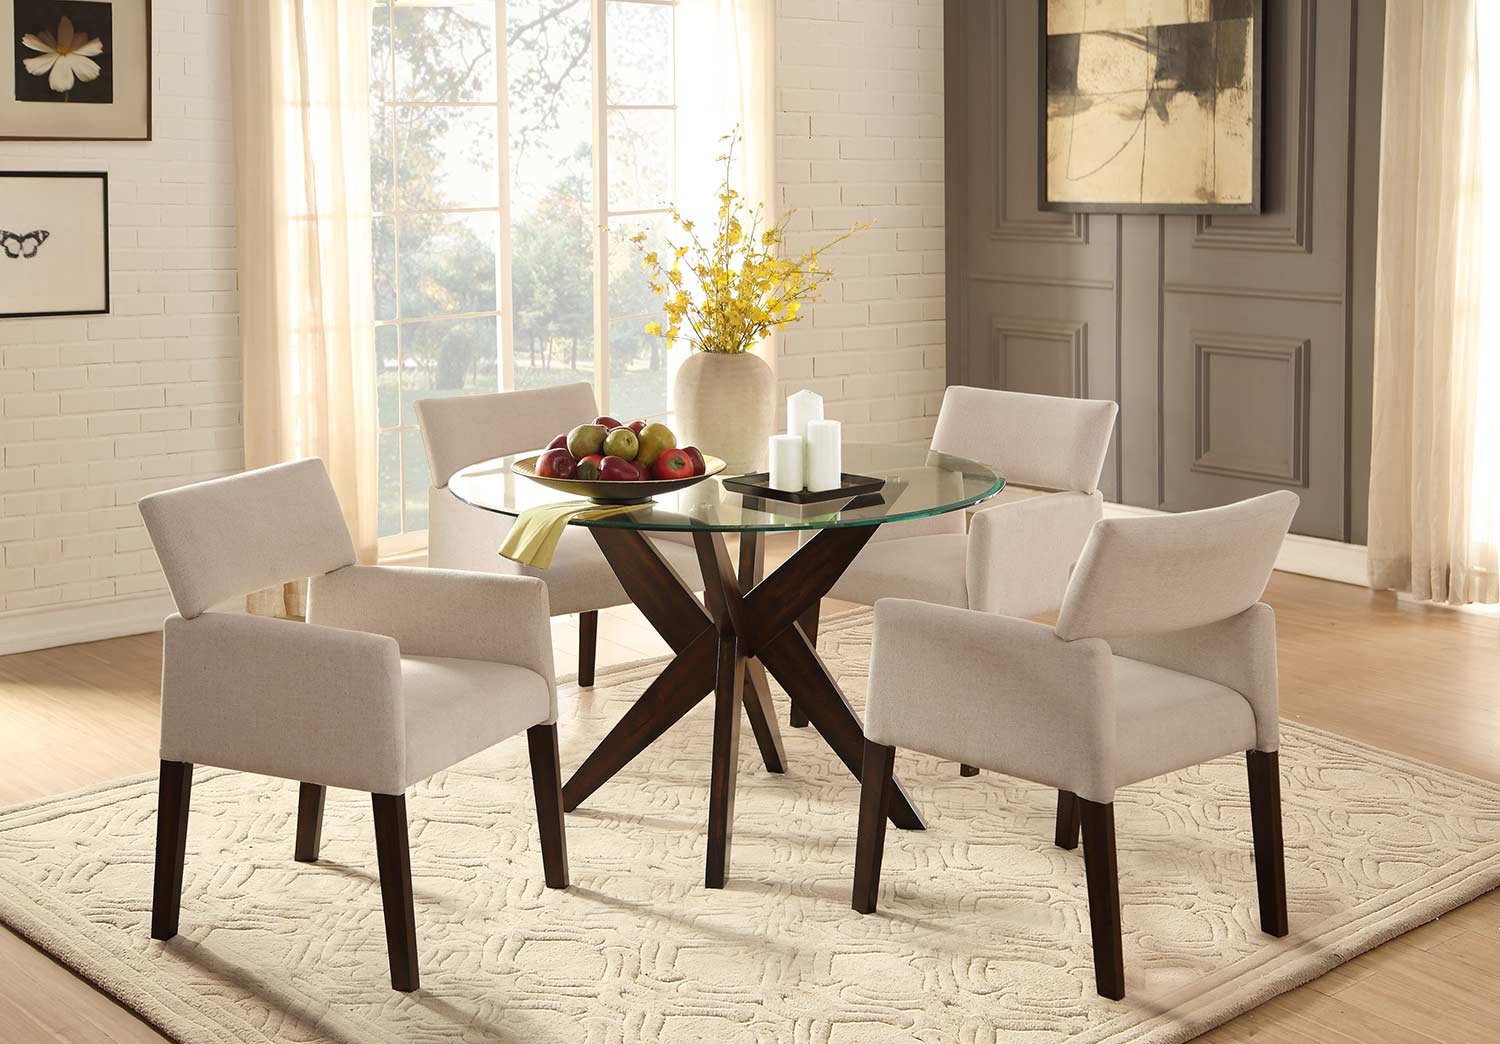 Homelegance Massey Round Glass Top Dining Set - Espresso